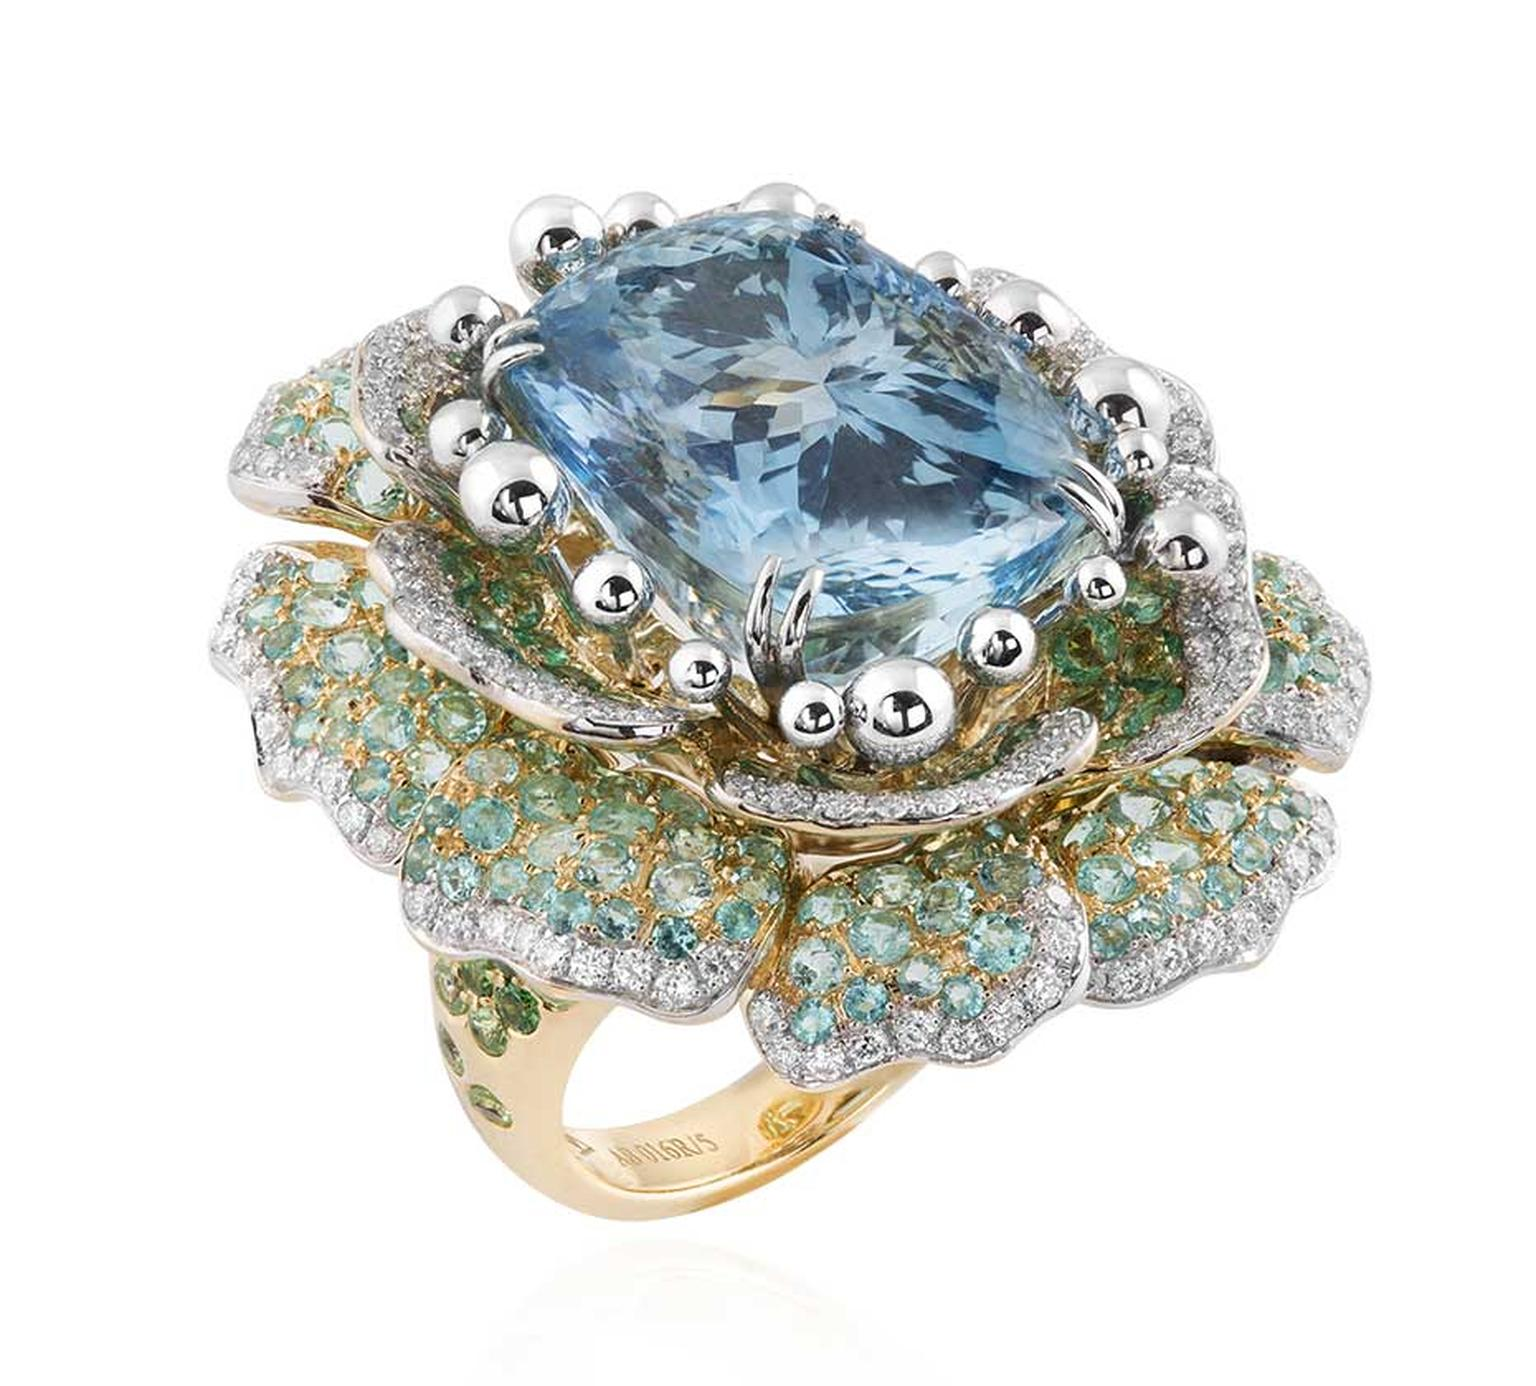 Alessio Boschi Peony aquamarine ring from the Naturalia high jewellery collection.